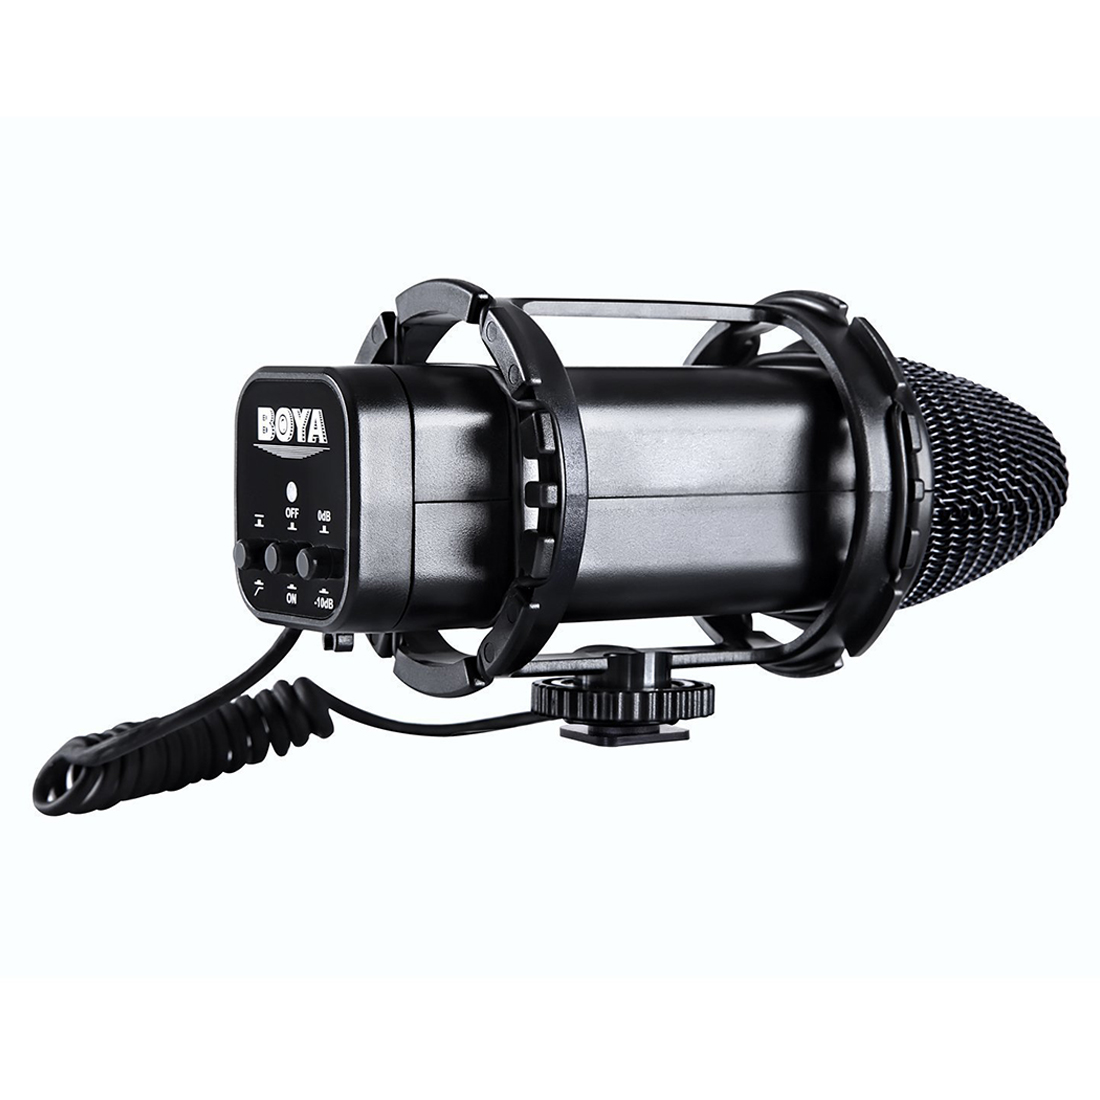 BY-V02 Camera Stereo Condensor miniphone for Canon 5D2 5D Mark III 6D 600D D800 D800E D810 D600 D300 D7000 Camcorder Recorders